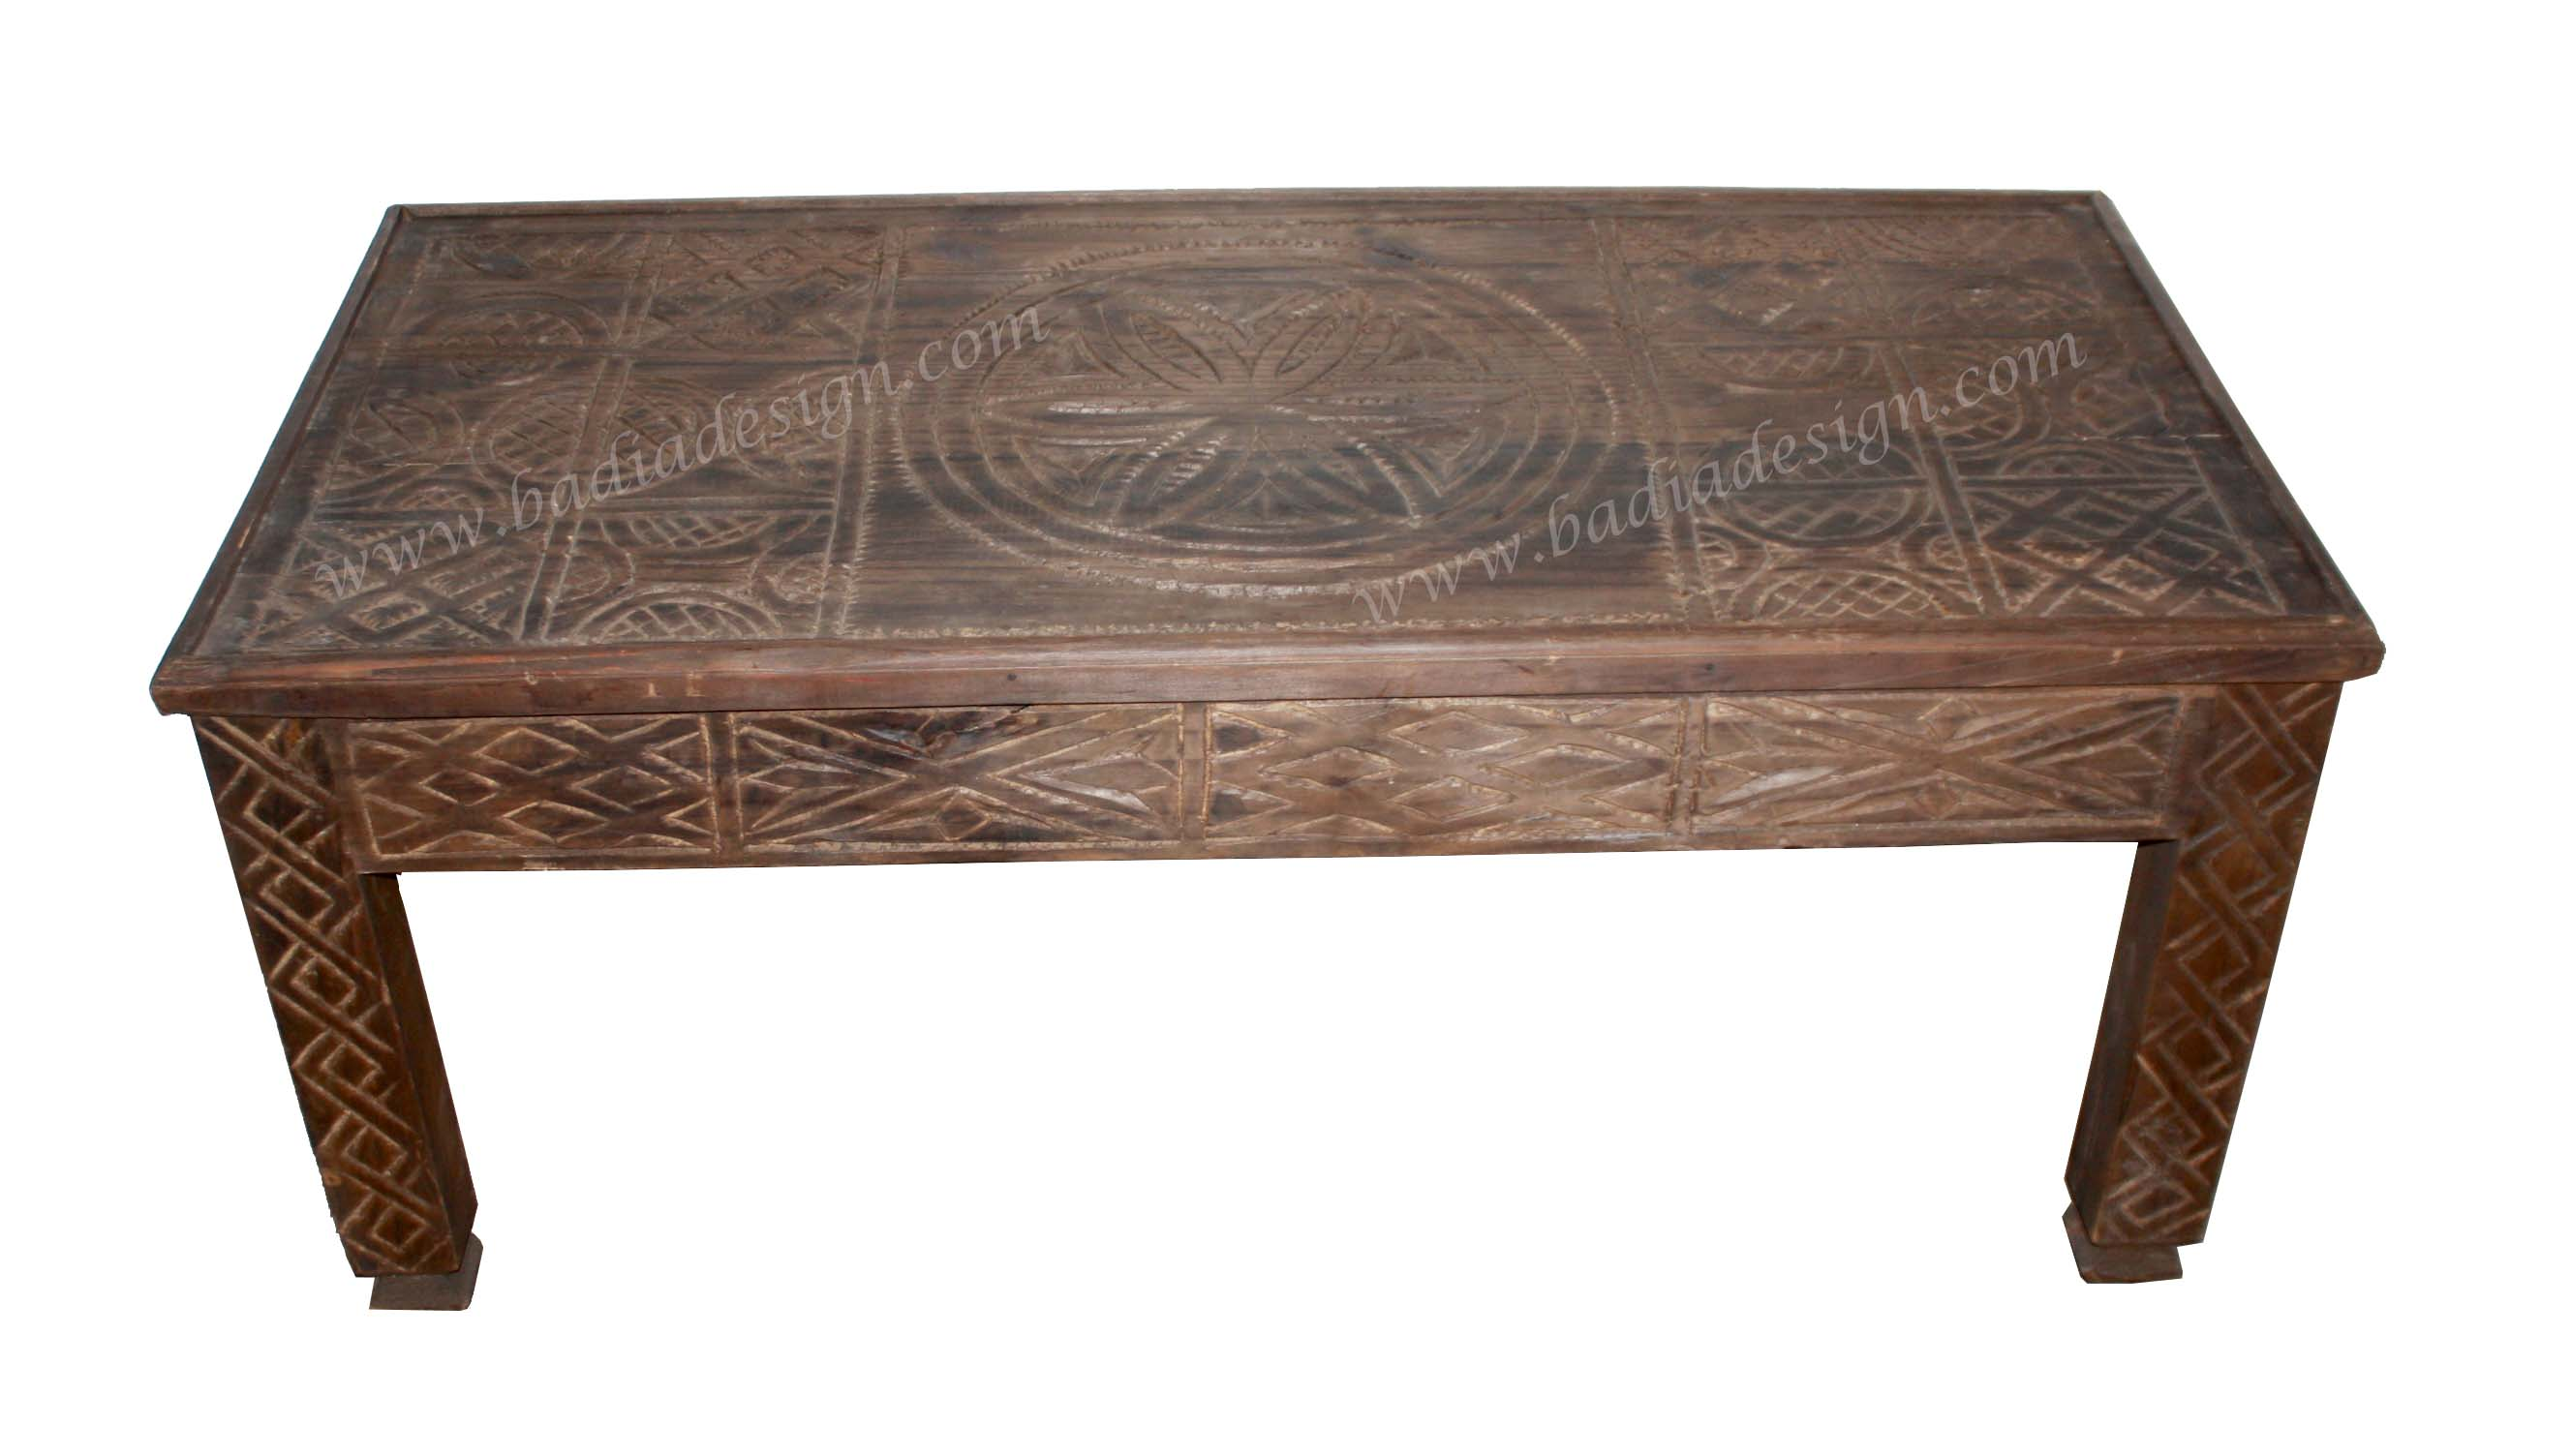 Moroccan Hand Carved Wooden Coffee Table from Badia Design Inc